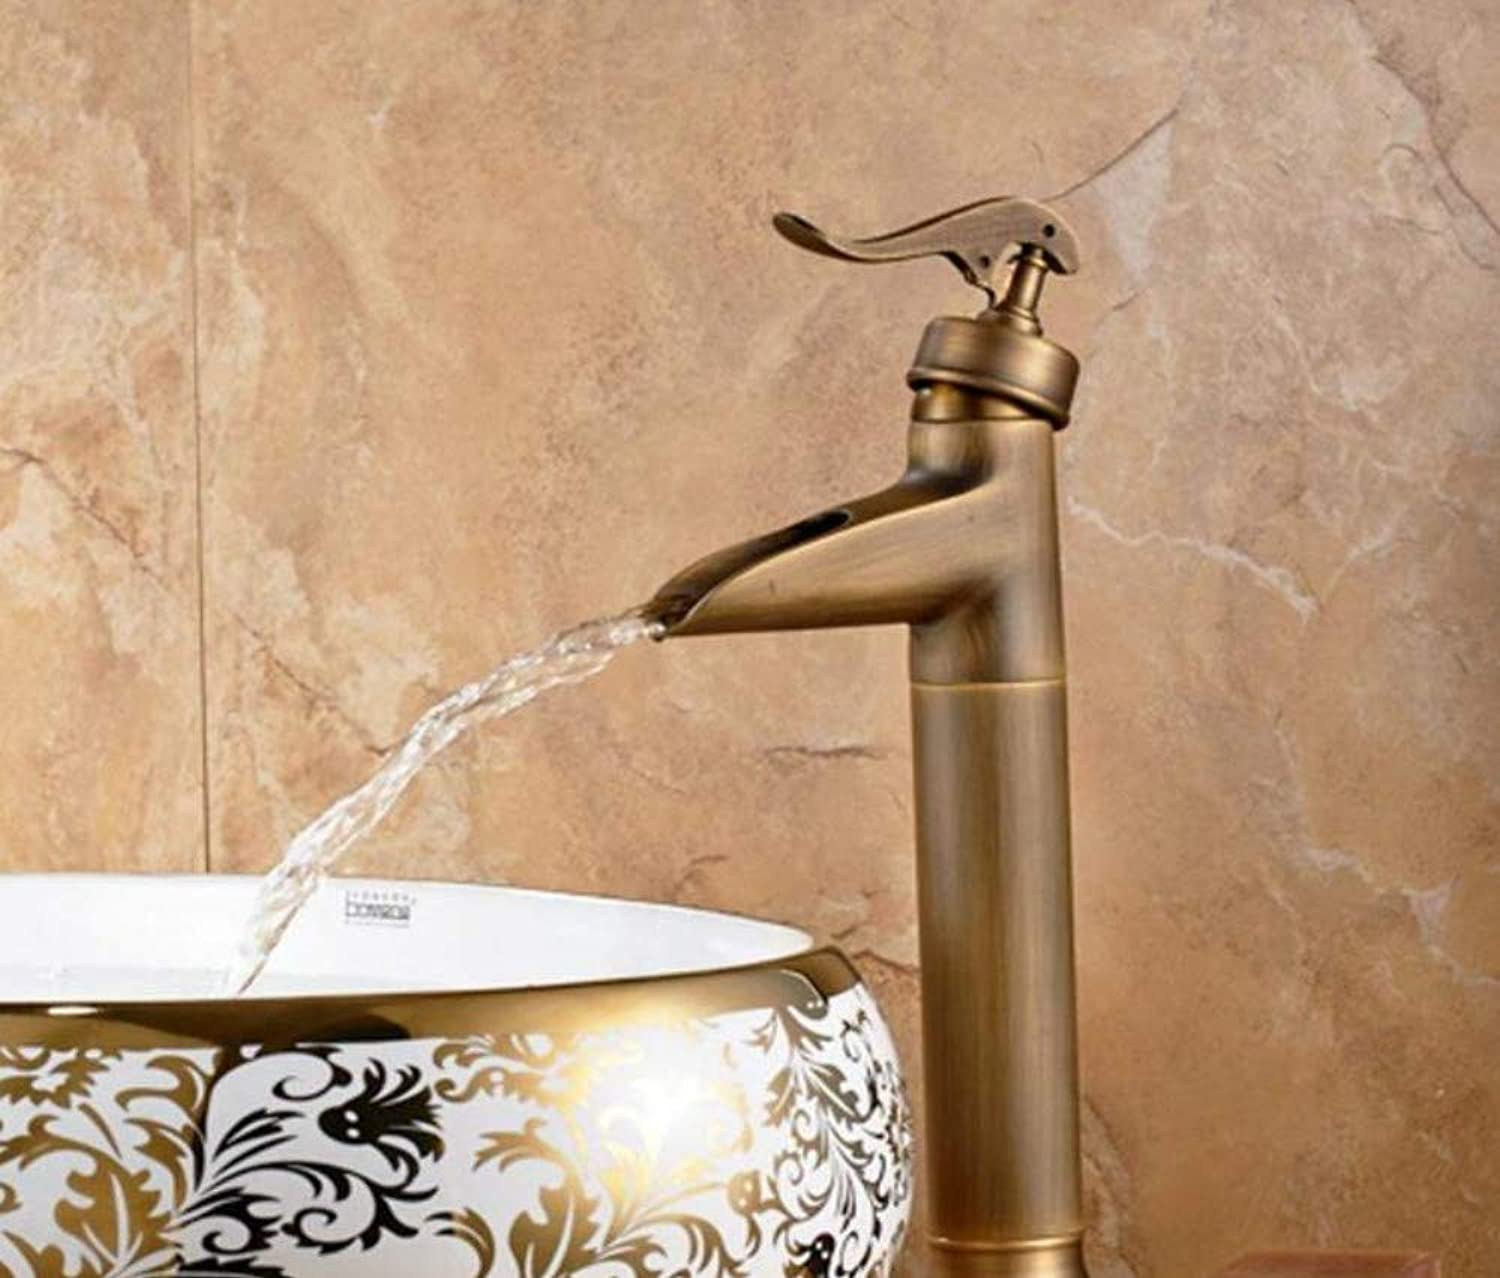 Retro Mixer Faucet All-Copper Basin Mixer Antique Faucet Hot and Cold Wash Basin Bathroom Counter Basin Counter Basin Faucet